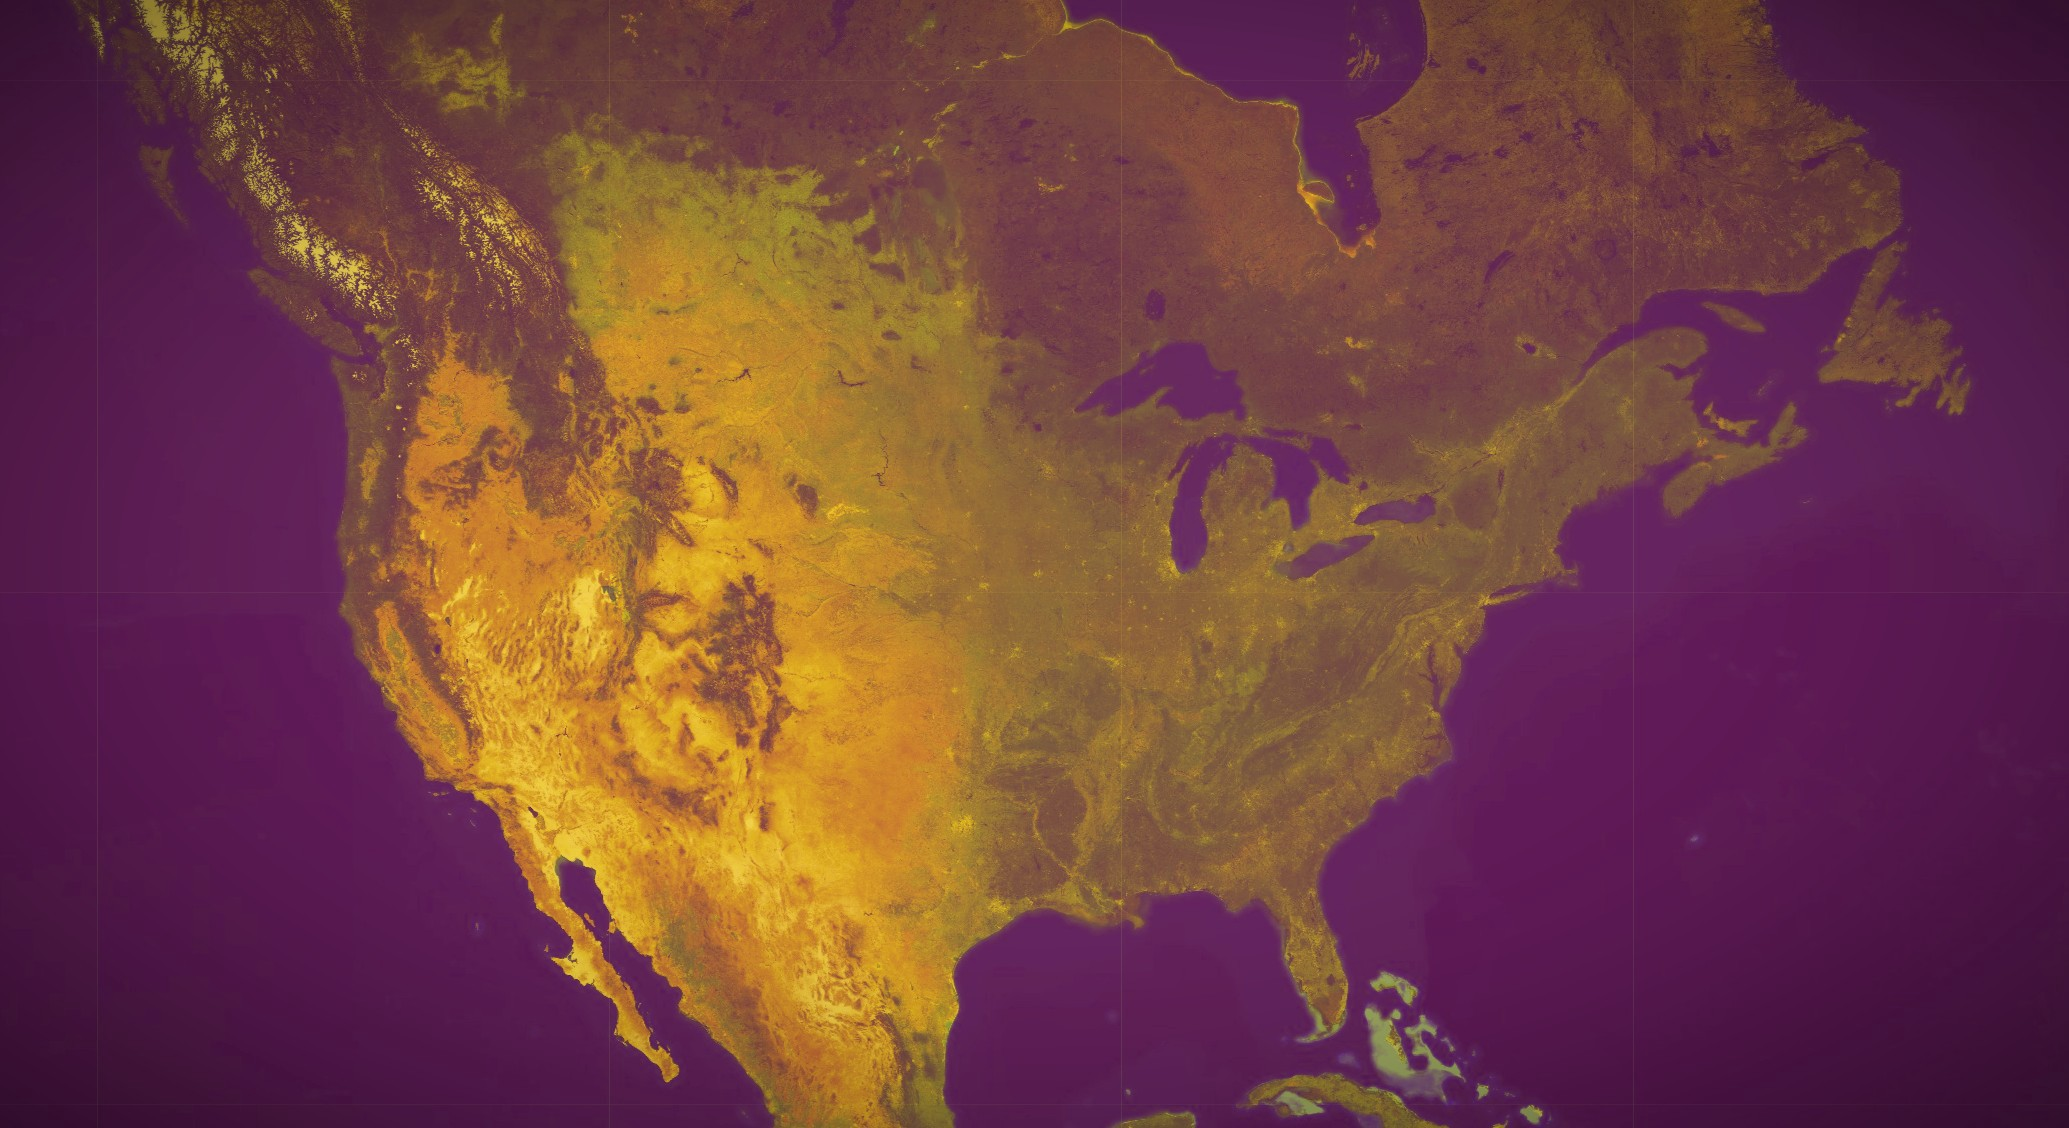 A satellite Google Earth view of the North American continent.